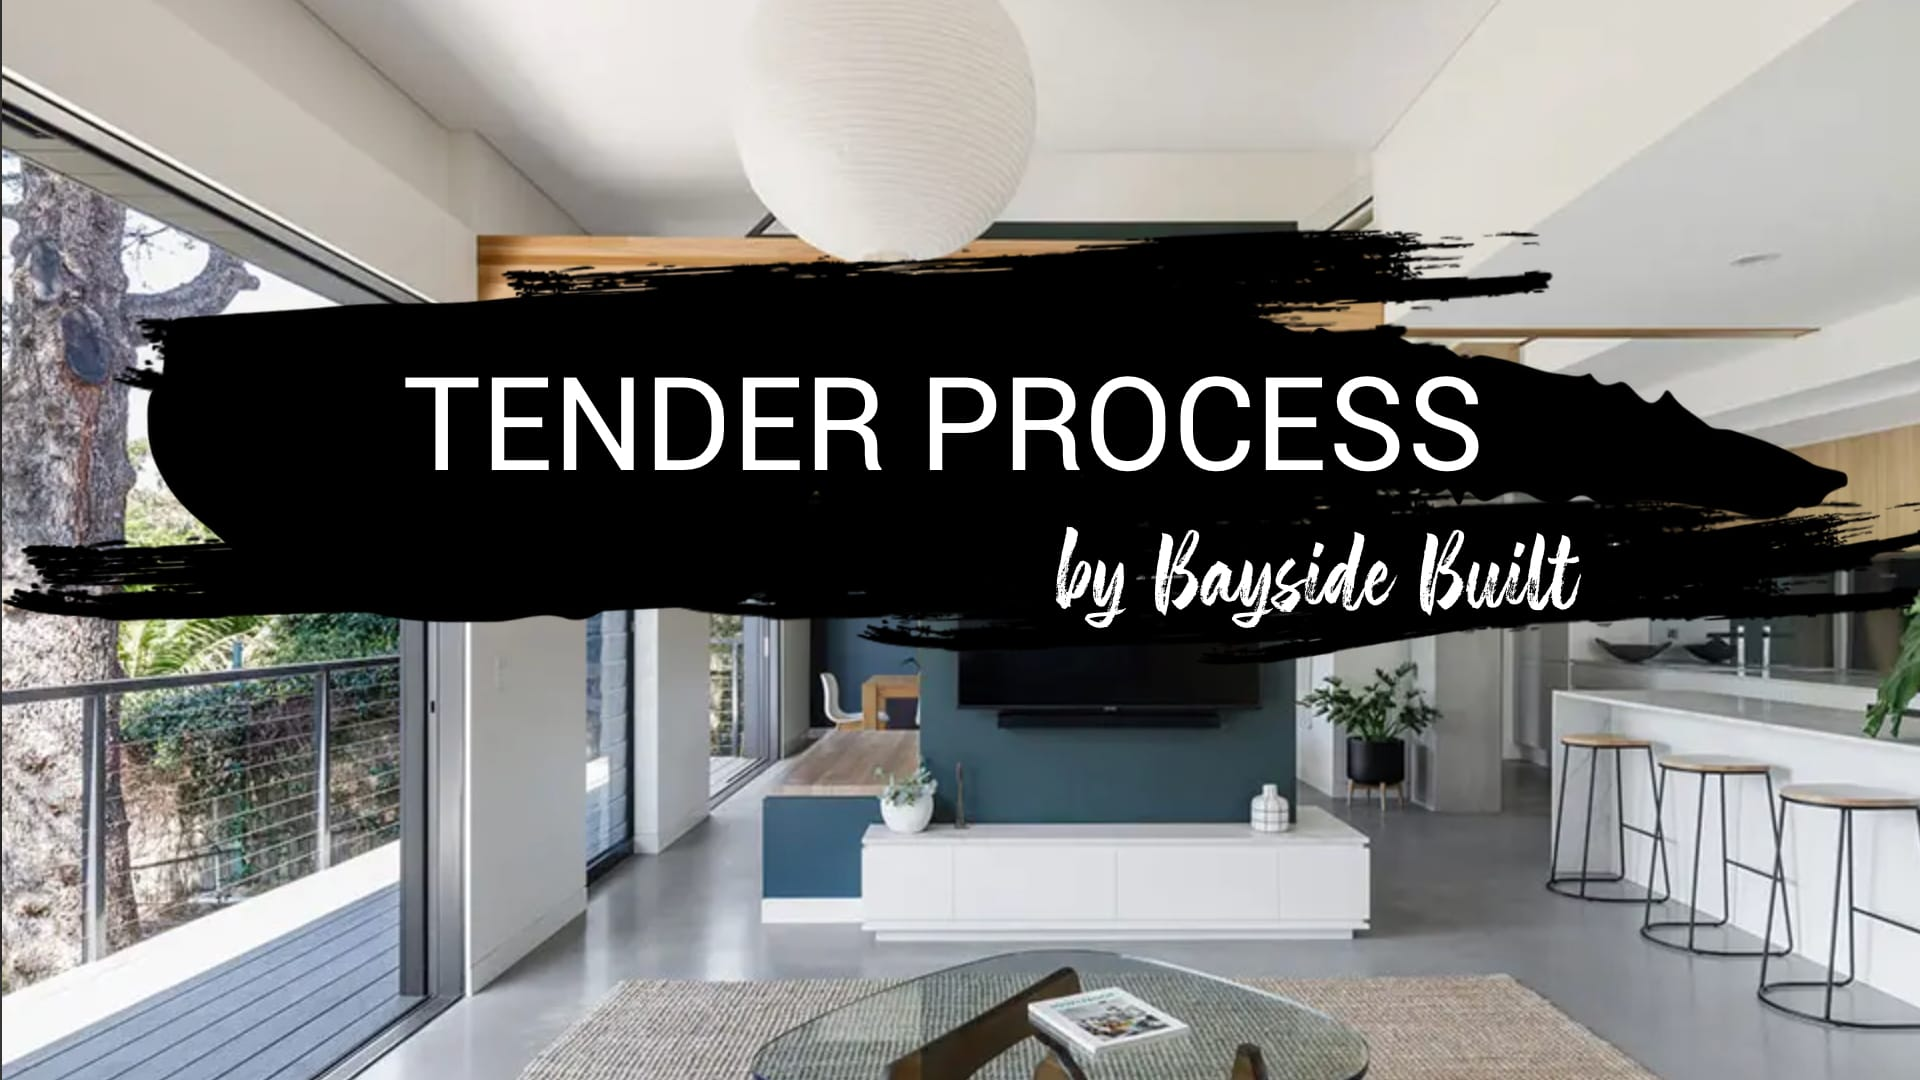 TENDER Process by Bayside built